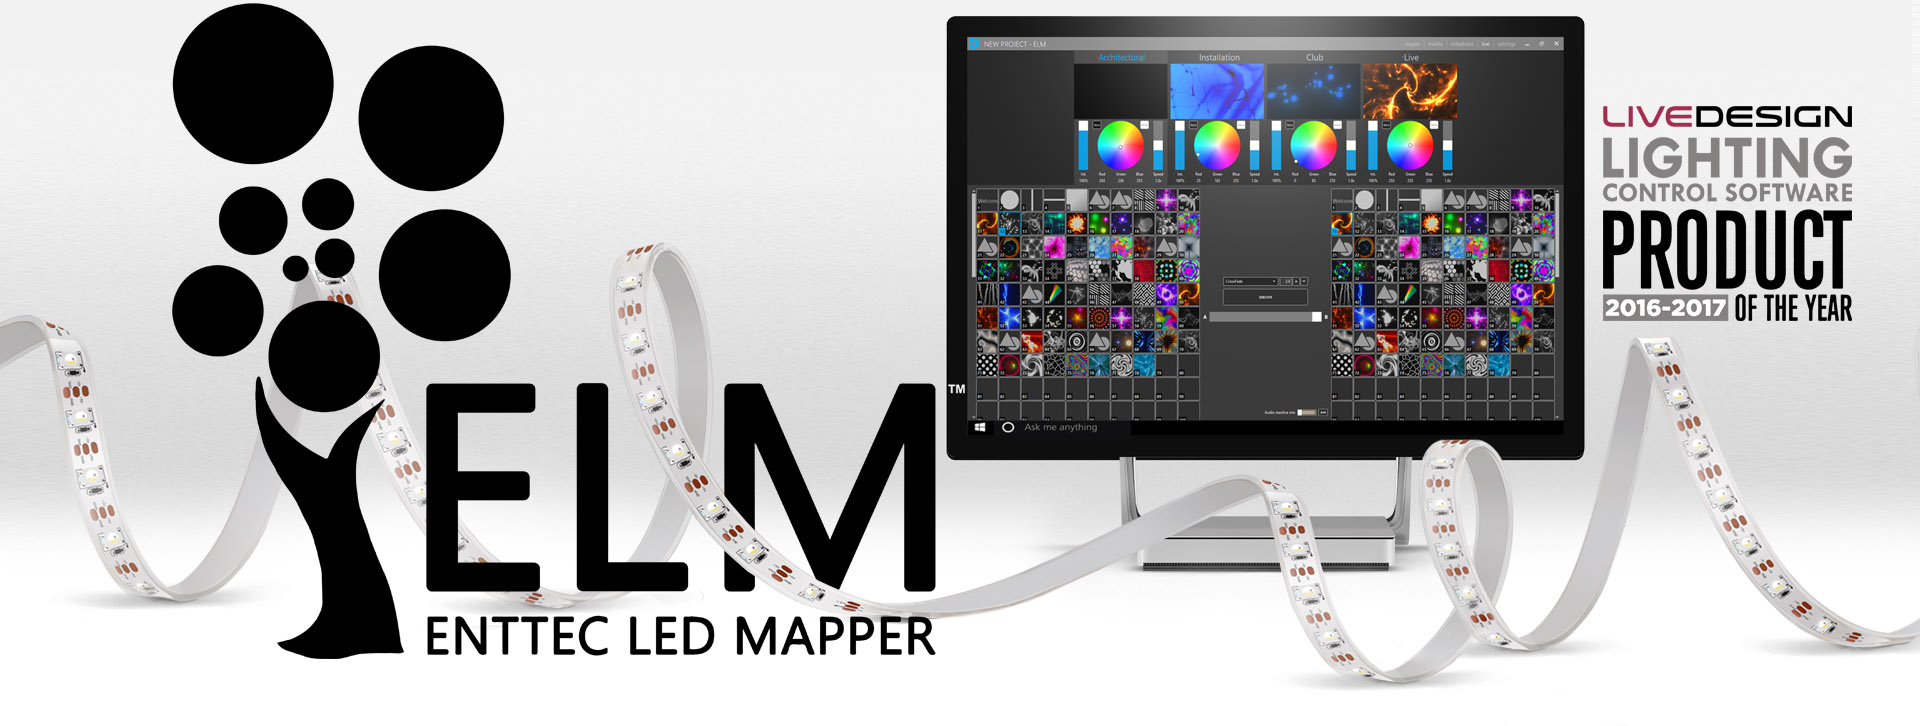 ENTTEC LED MAPPER (ELM)